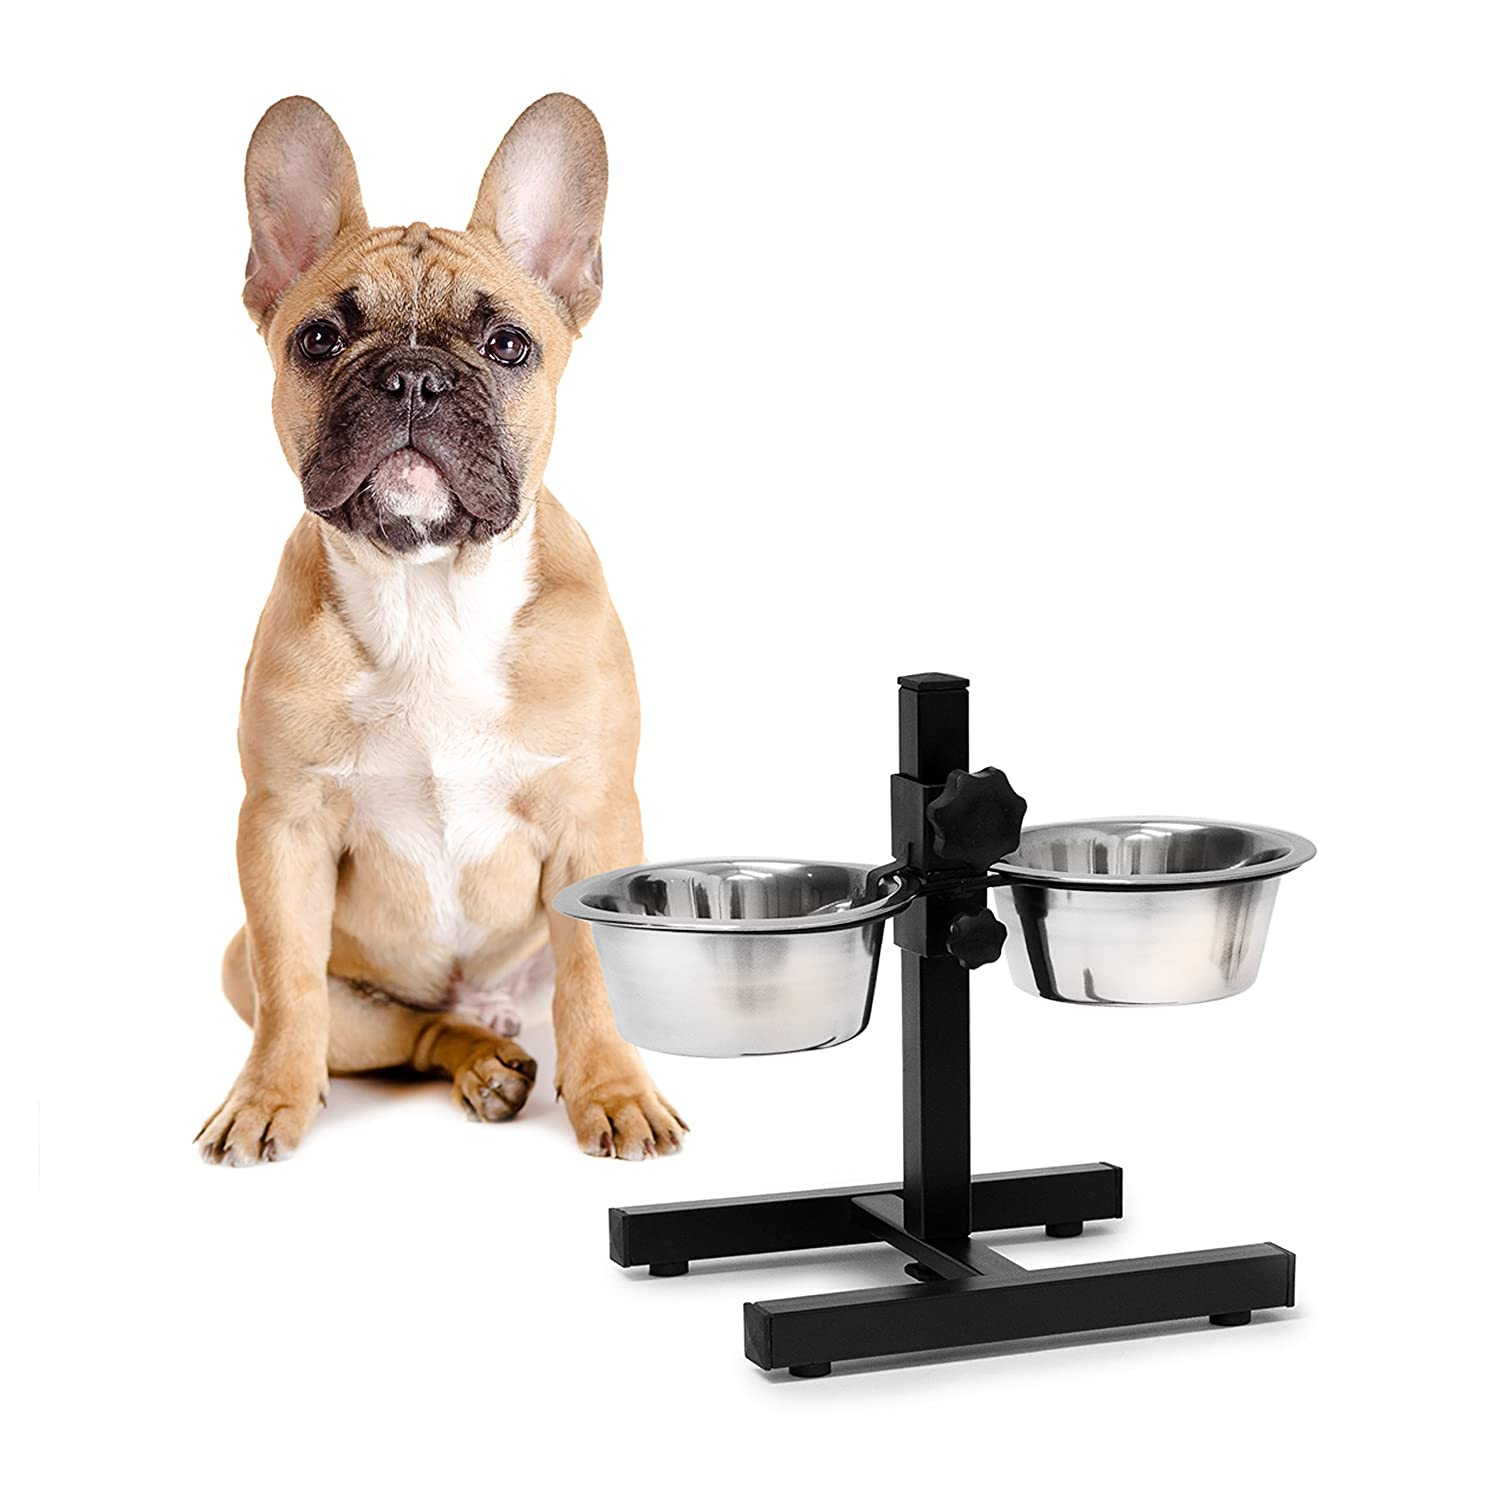 Relaxdays Stainless Steel Feeding Bowl Set Of 2 With Height-Adjustable Stand, Dog Feeding Station With 2 Removable Bowls Cat Feeder Metal Elevated Raised Standing Feeder Bowl Set, Medium, Silver 10019116-398